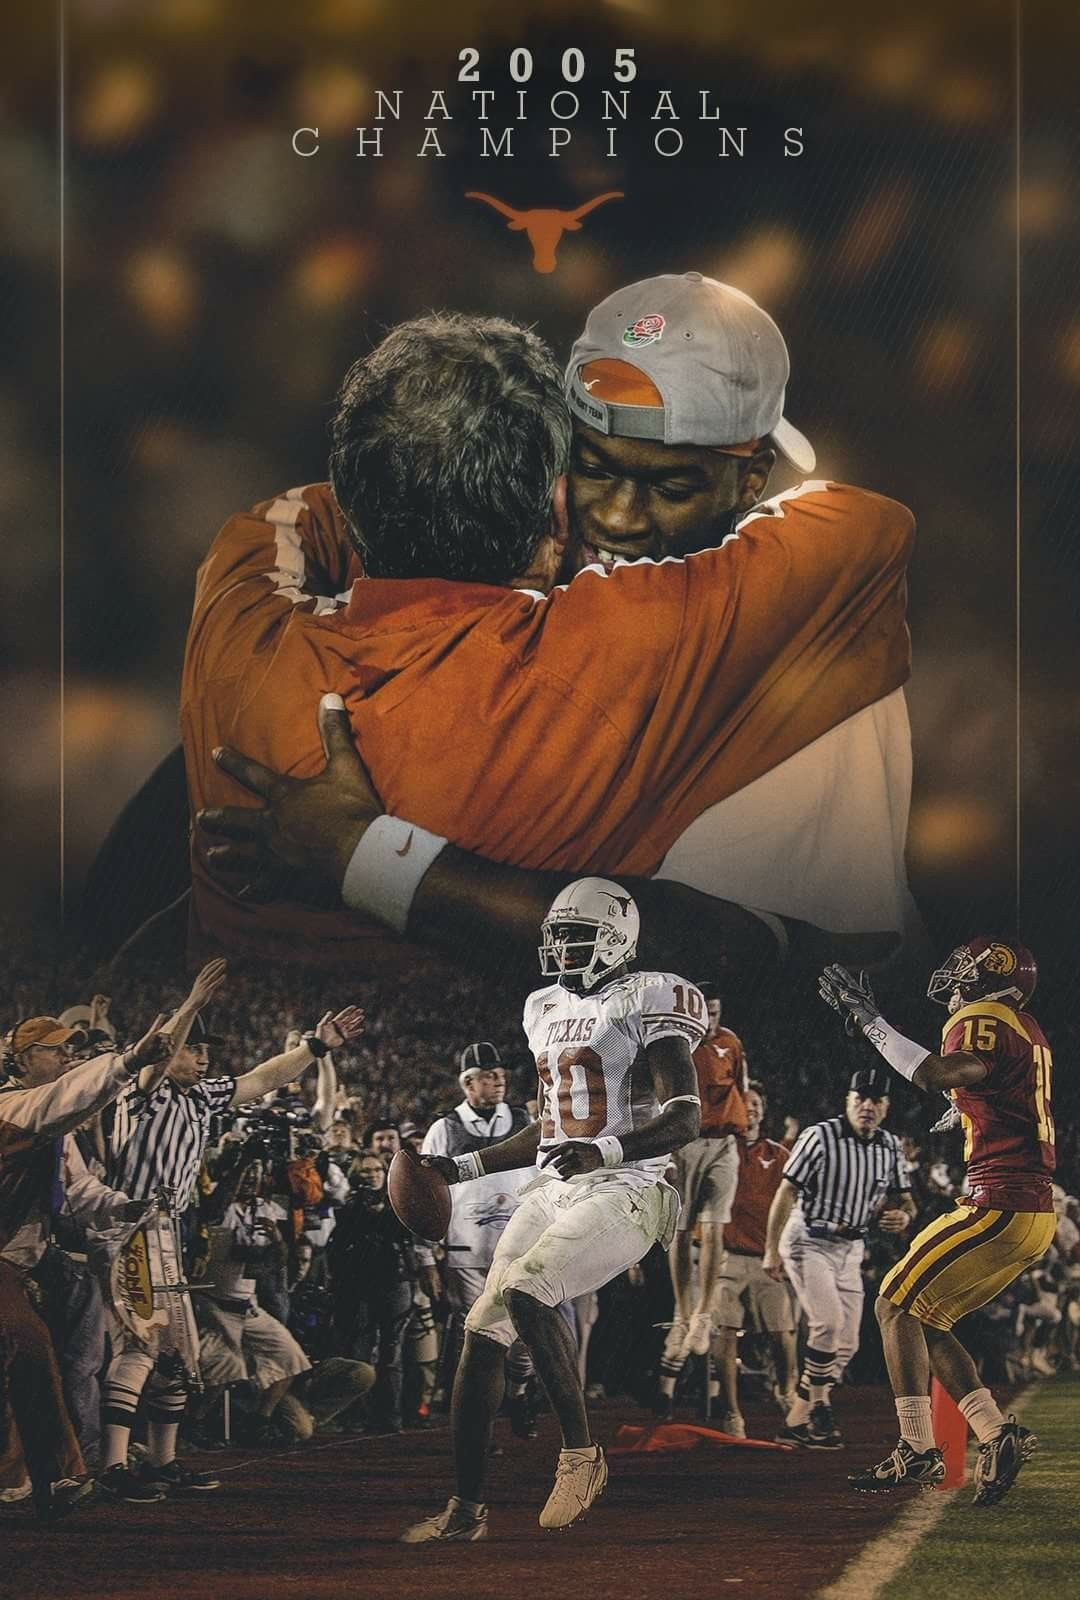 Pin By James Mcroy On Sports Teams National Champions Sports